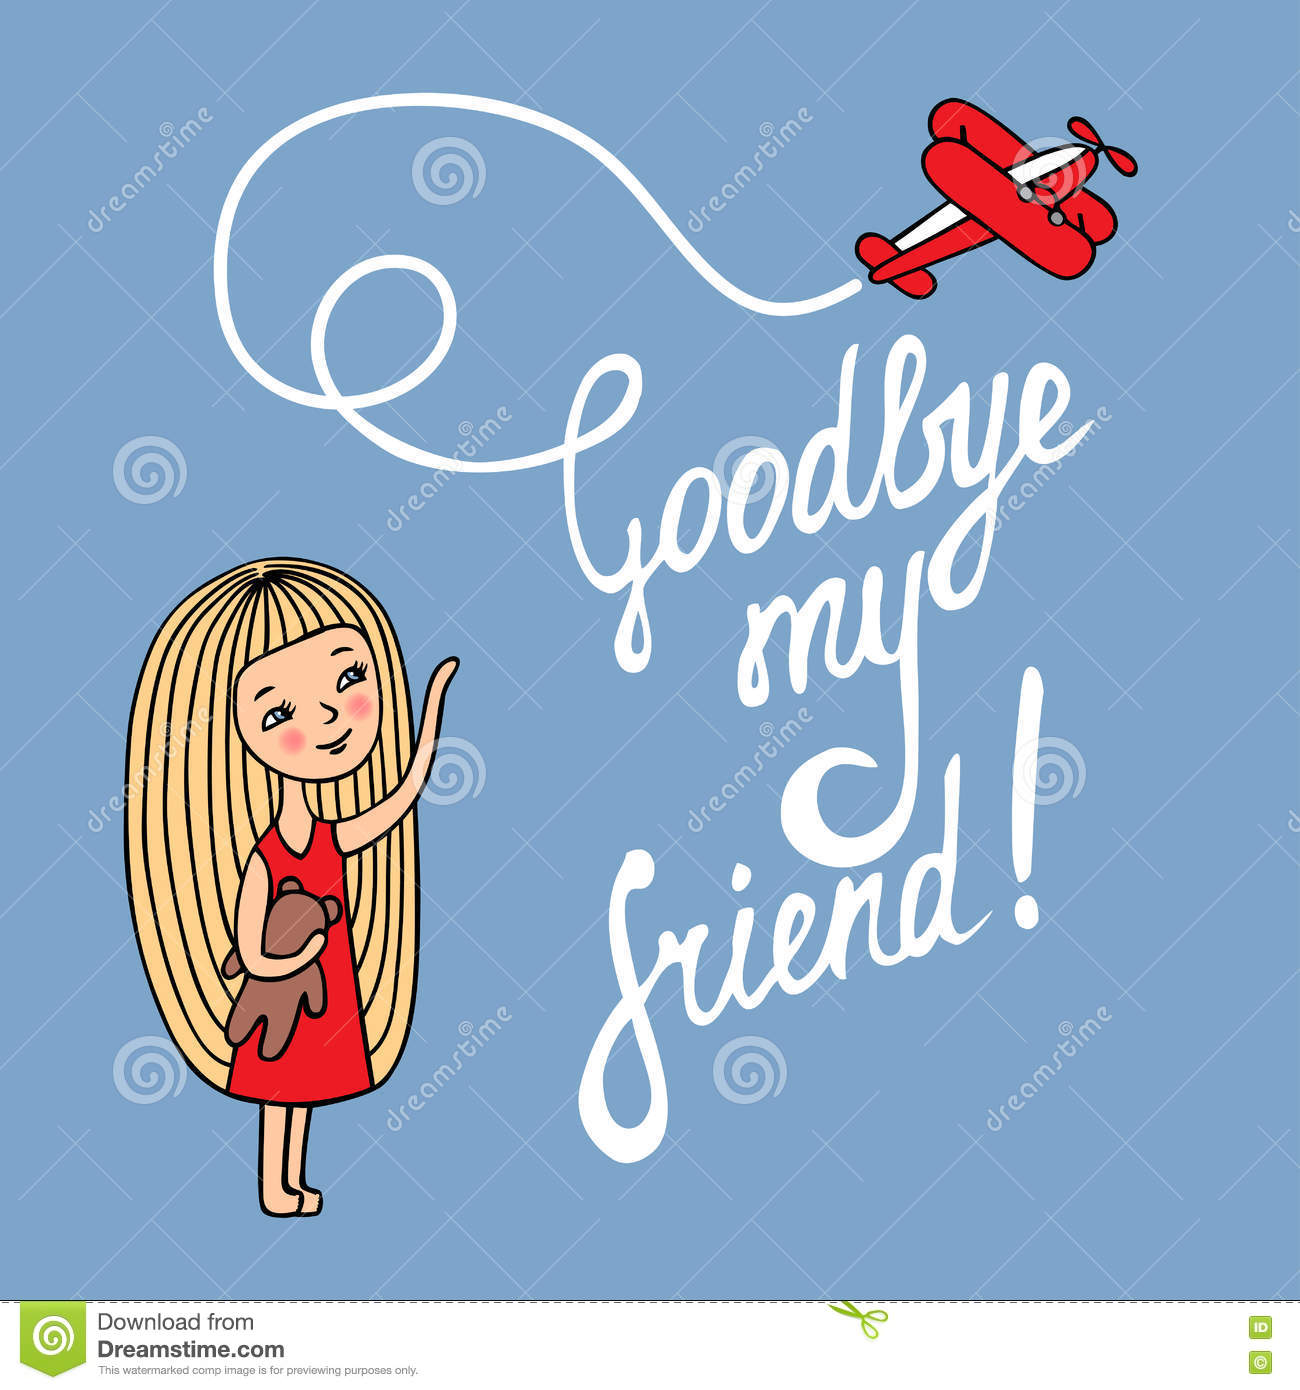 Goodbye my friend stock vector. Image of goodbye, person ...